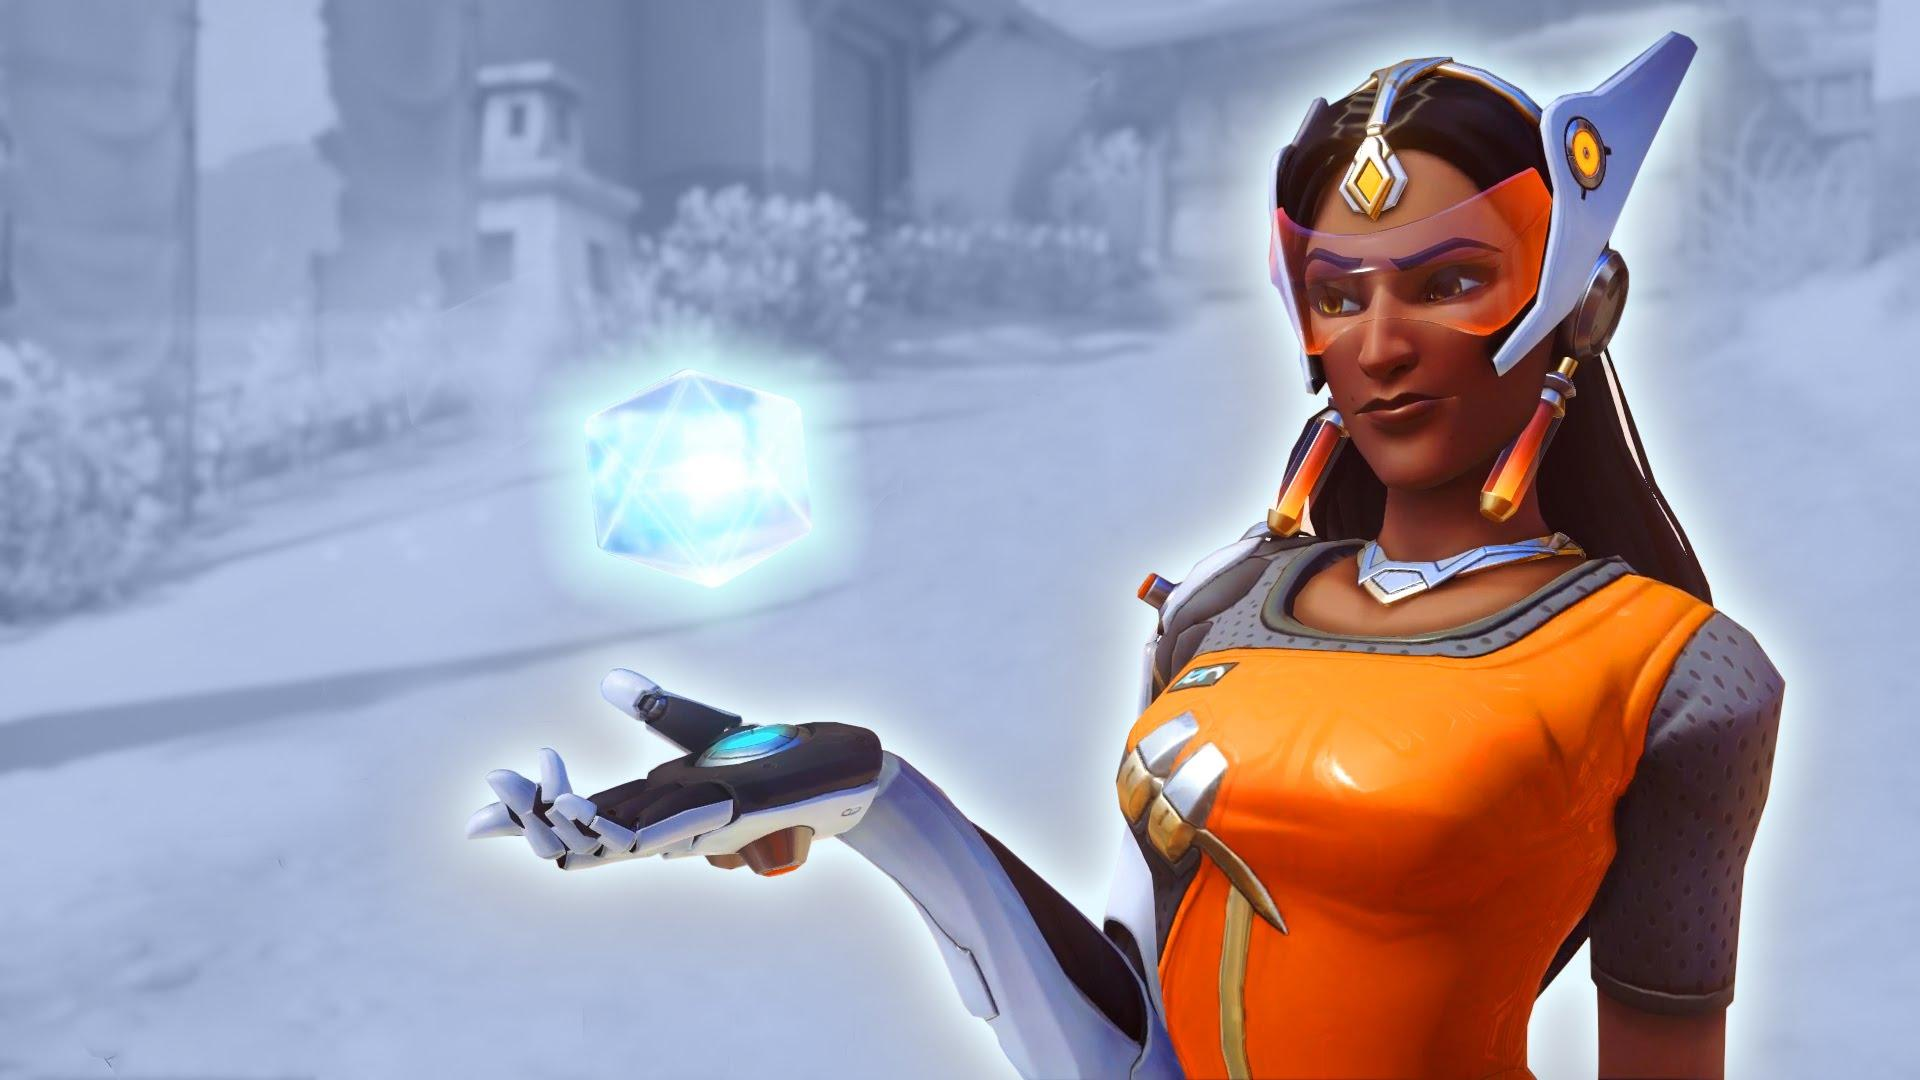 Group of Overwatch Symmetra Wallpaper By